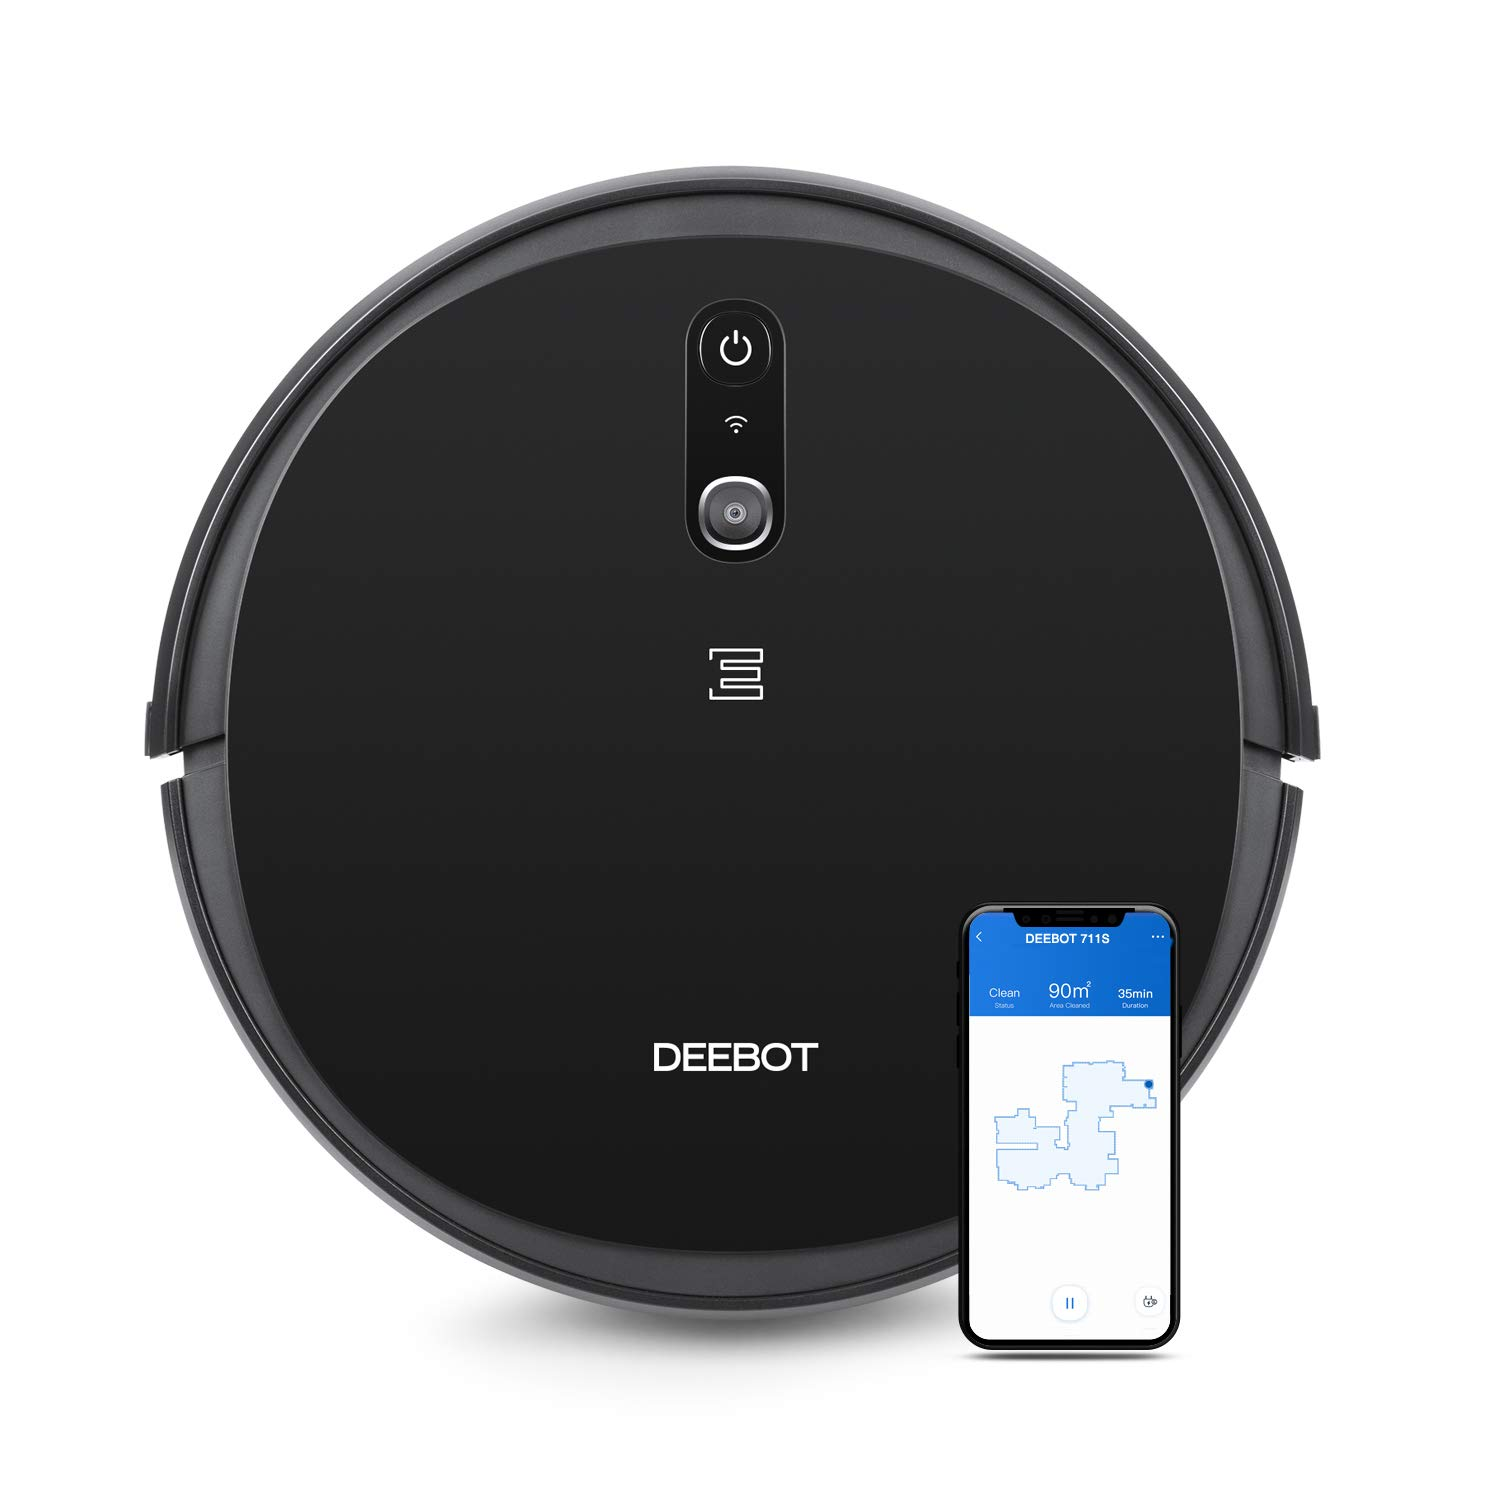 ECOVACS DEEBOT 711S Robot Vacuum Cleaner with Smart Navi 2.0 Visual Mapping, Max Power Suction, Up to 130 Min Runtime, Hard Floors and Carpets, Pet Hair, App Controls, Self-Charging, Quiet, Black